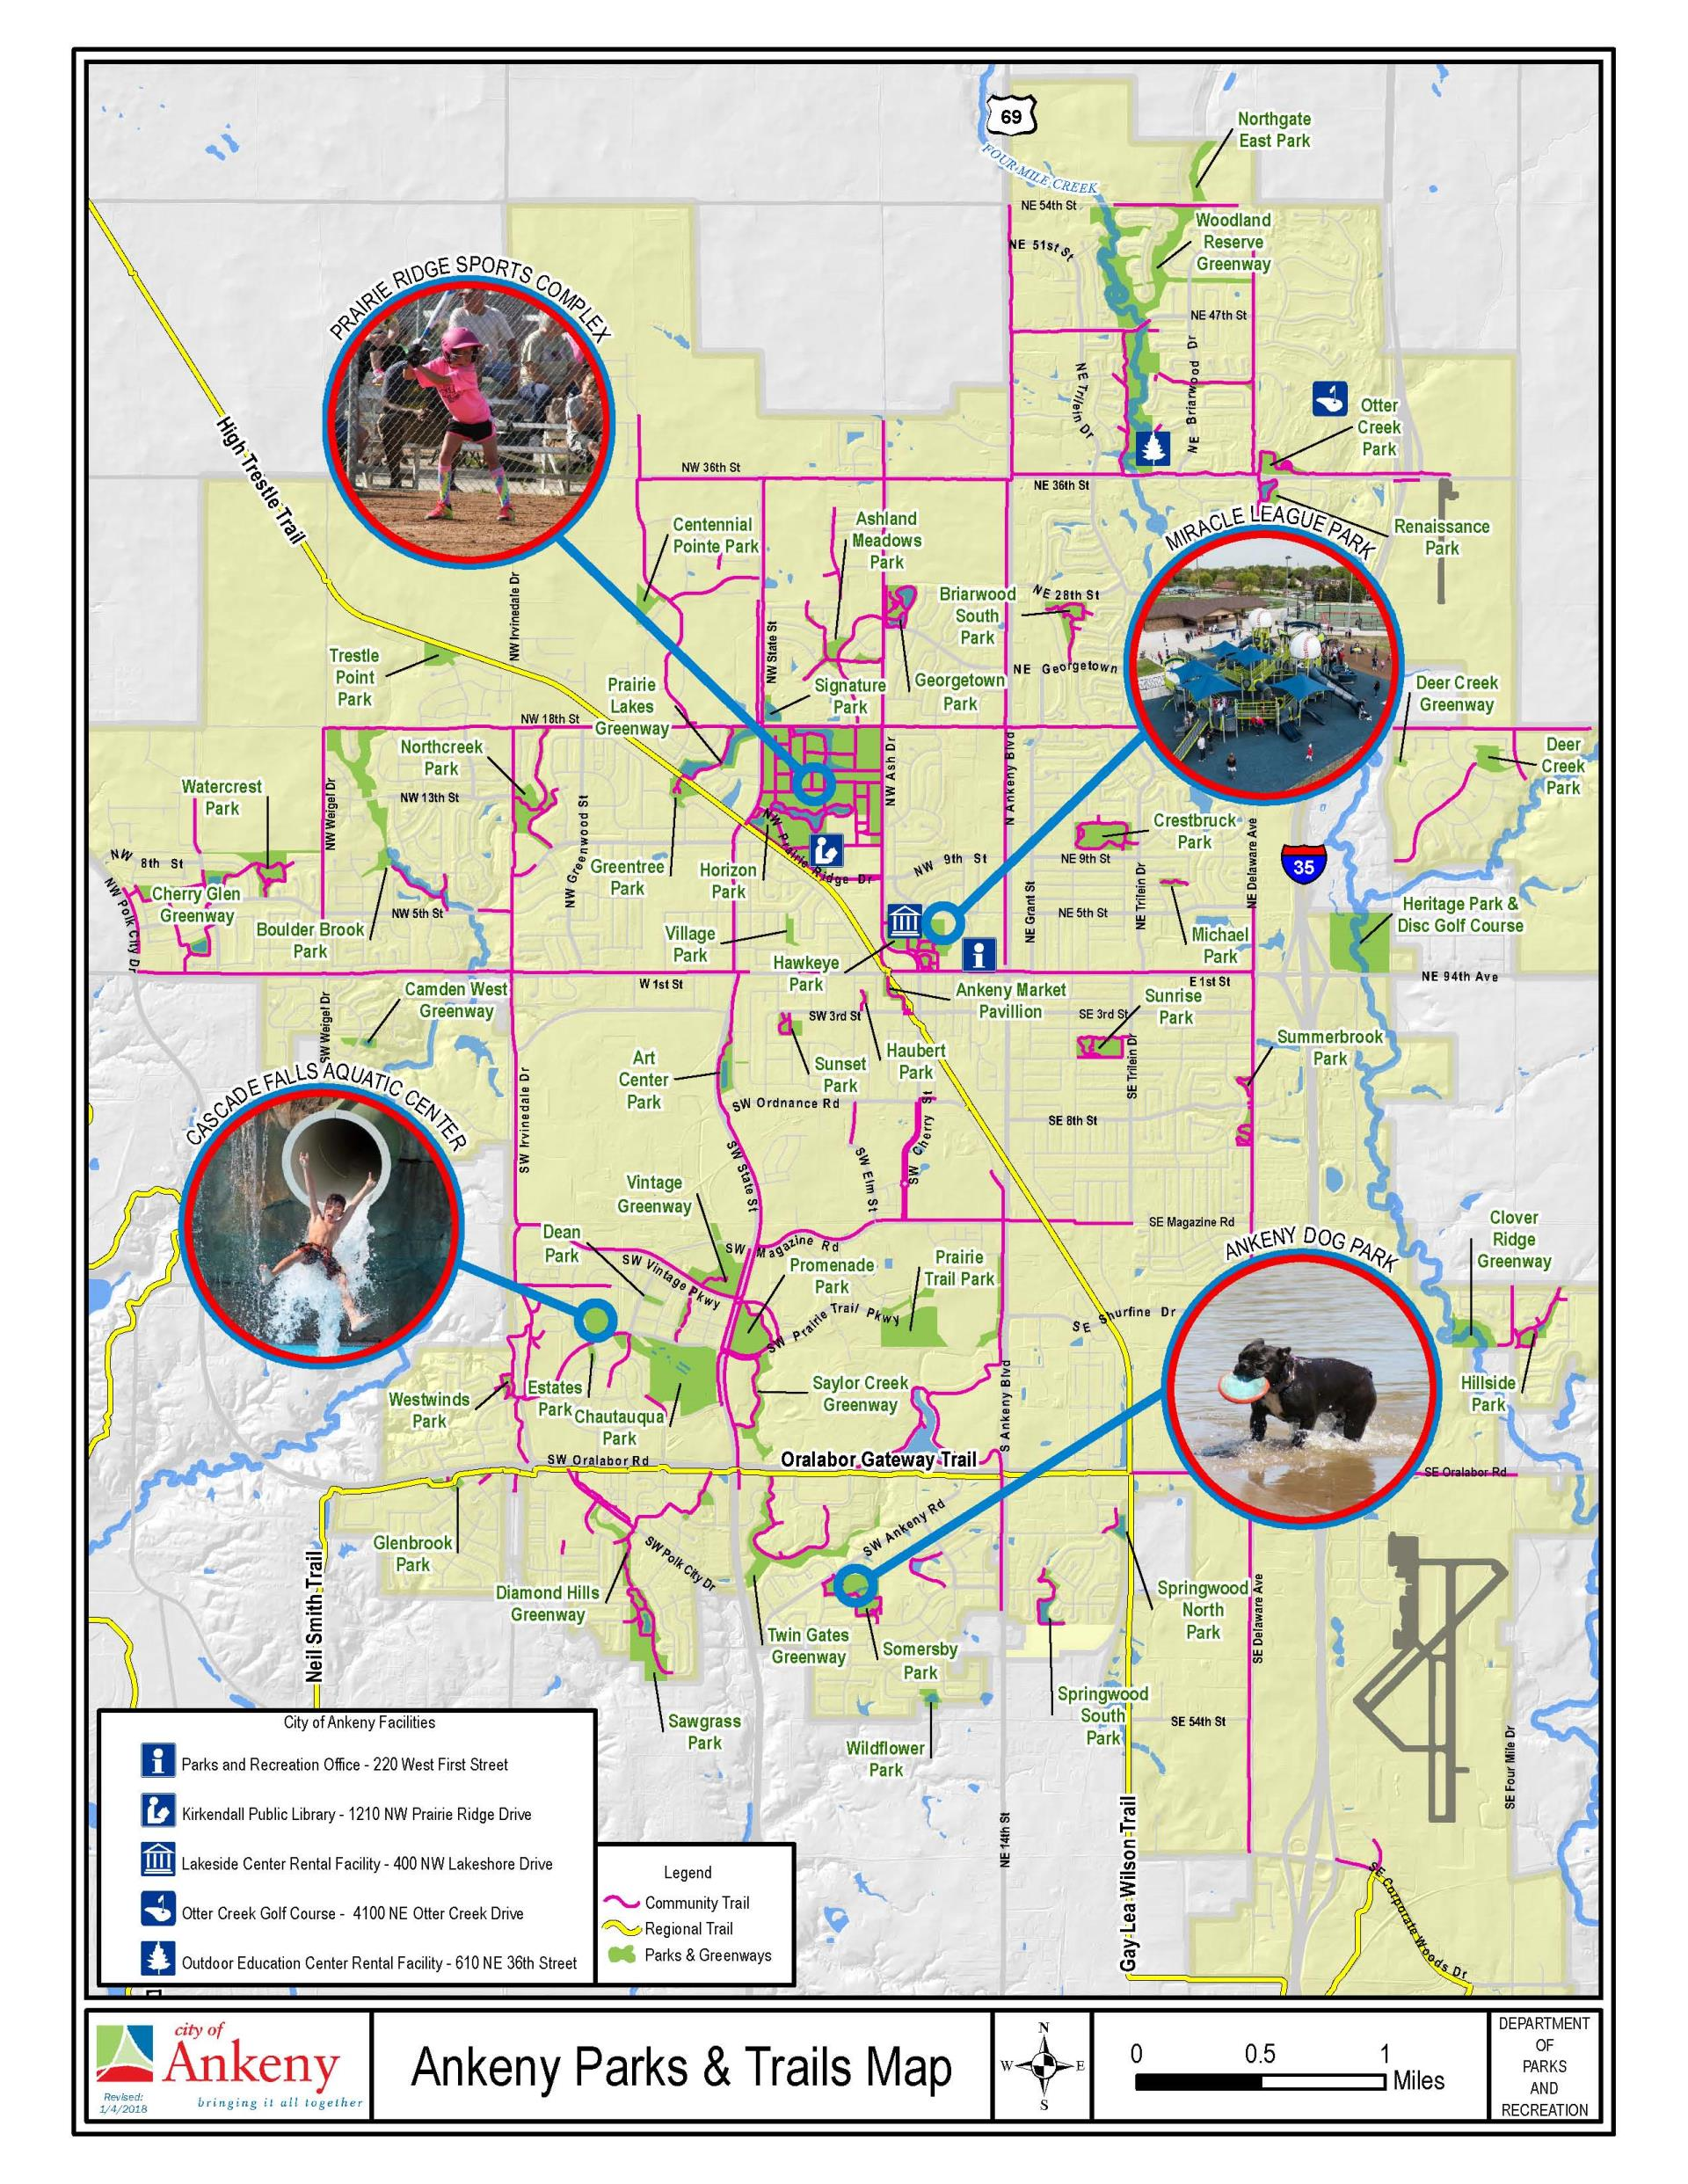 Ankeny Parks andTrails map